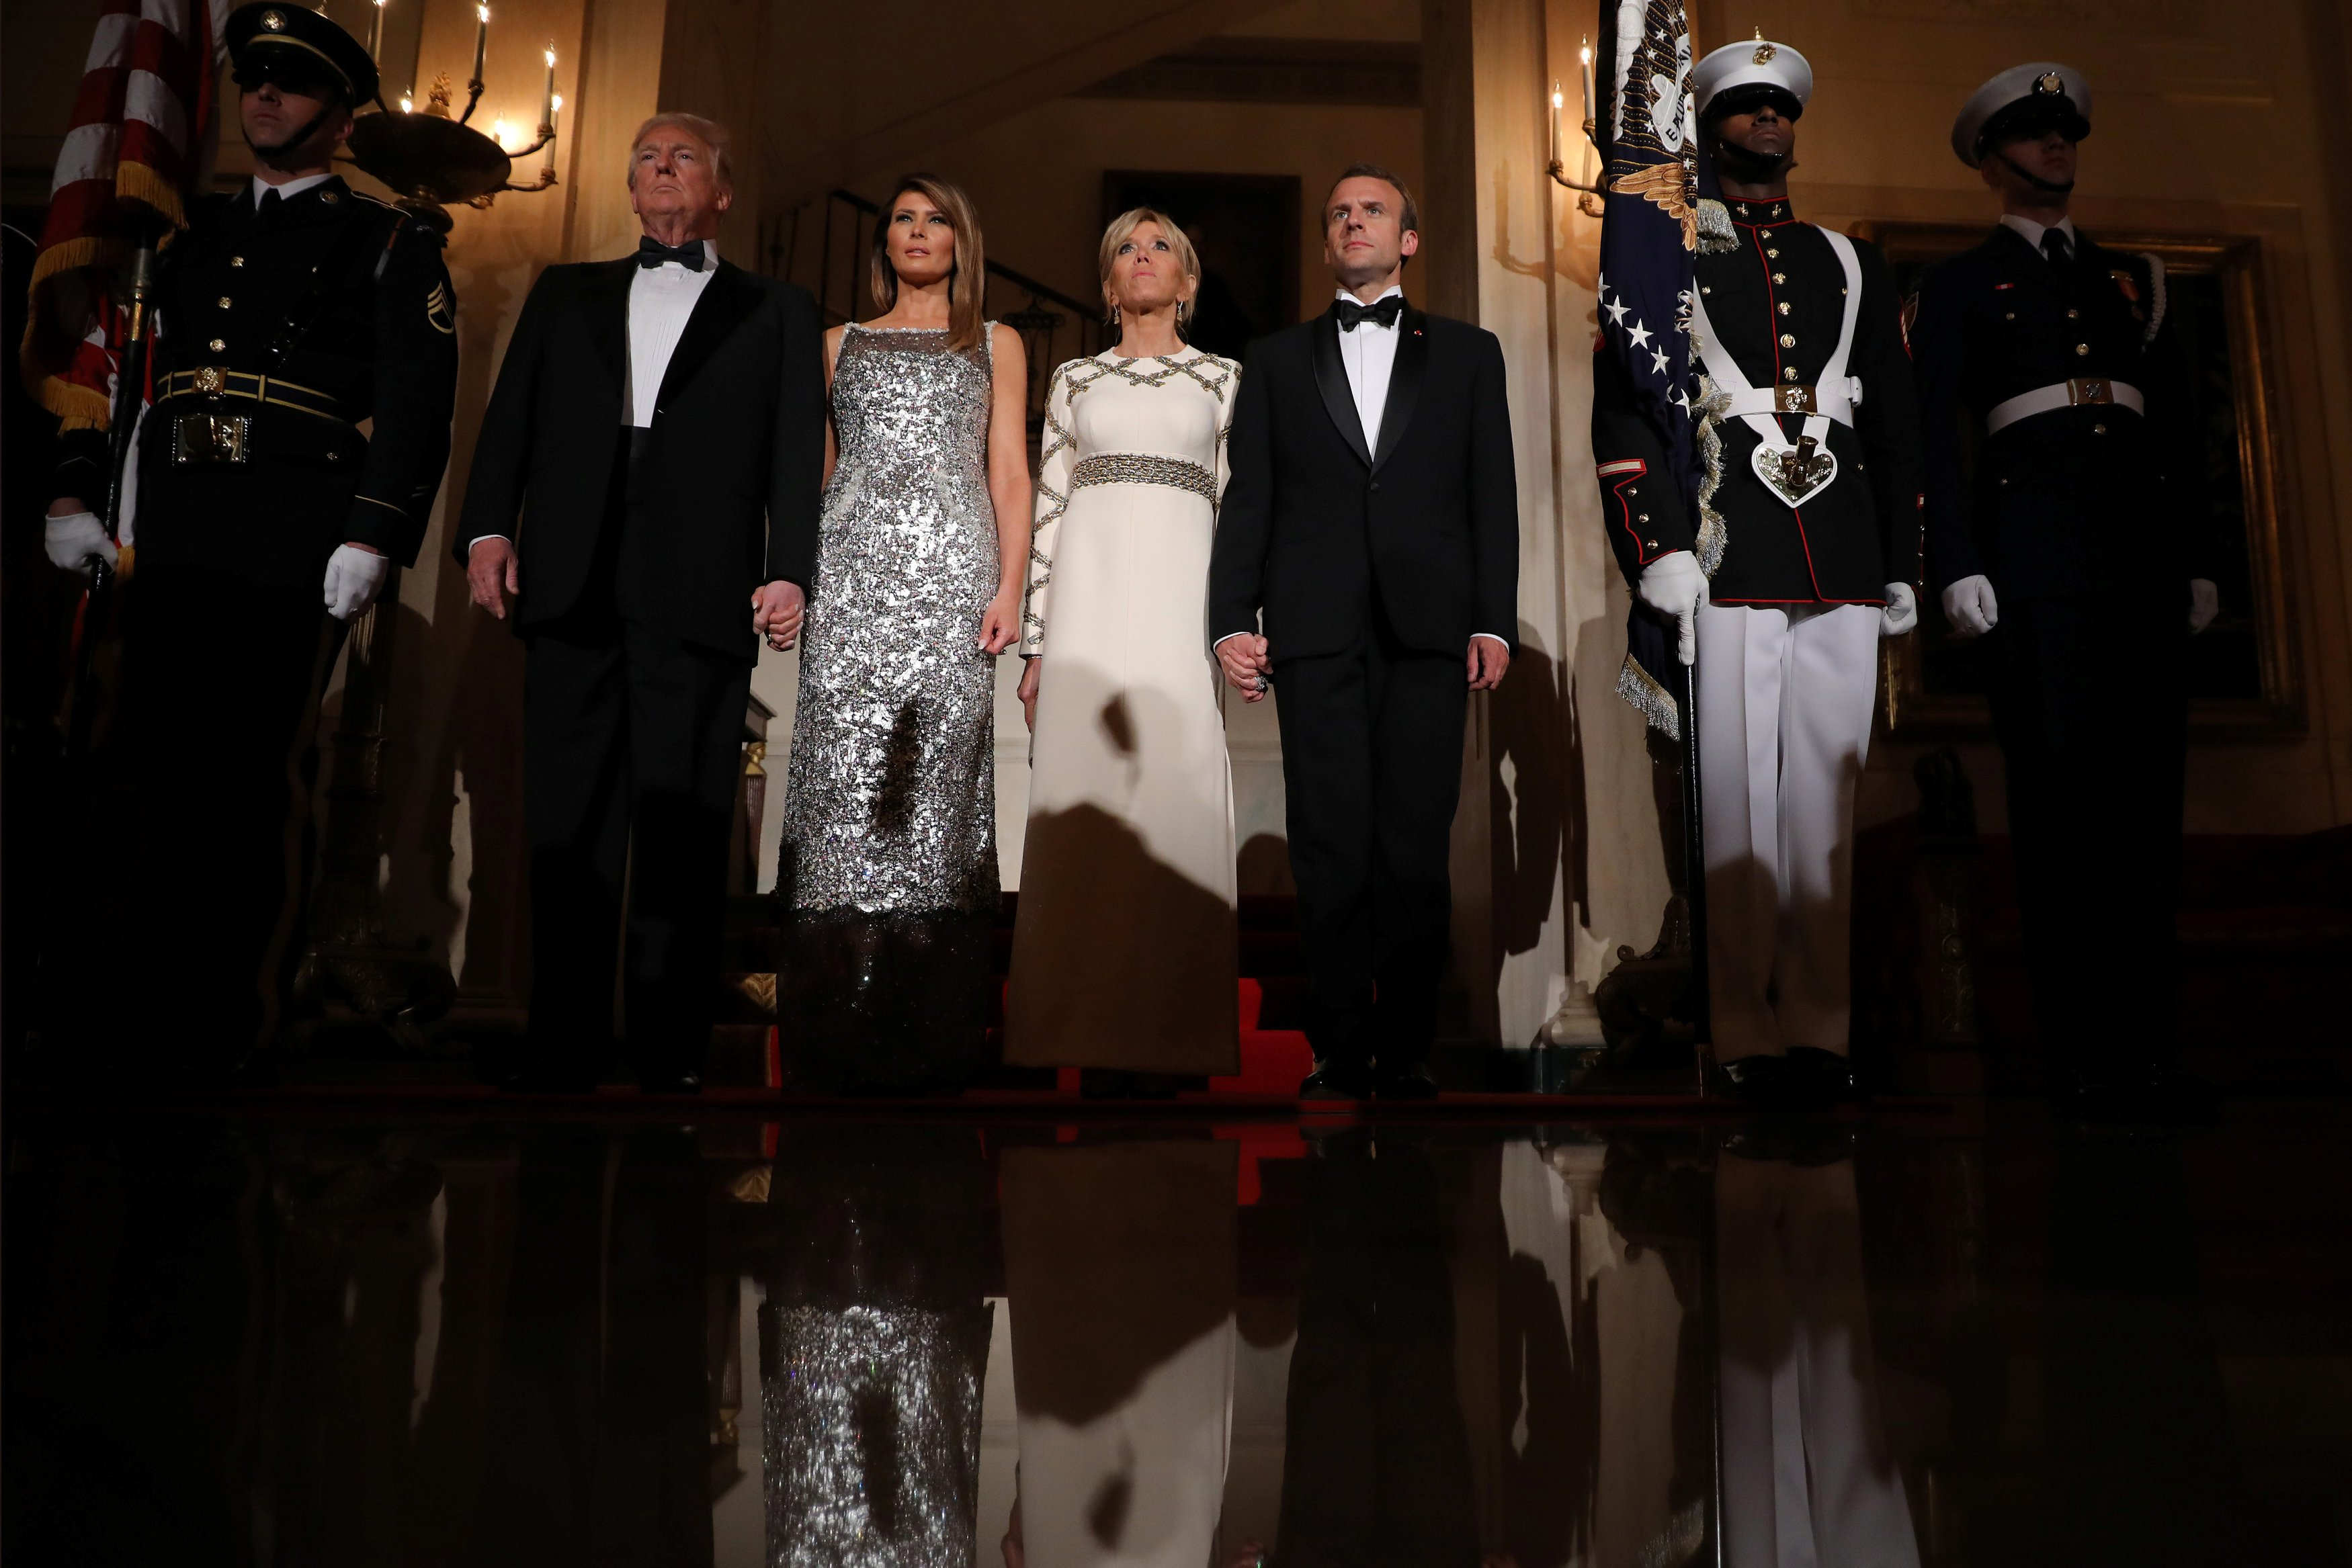 U.S. President Trump, first lady Melania, French President Macron and his wife attend a State Dinner at the White House in Washington